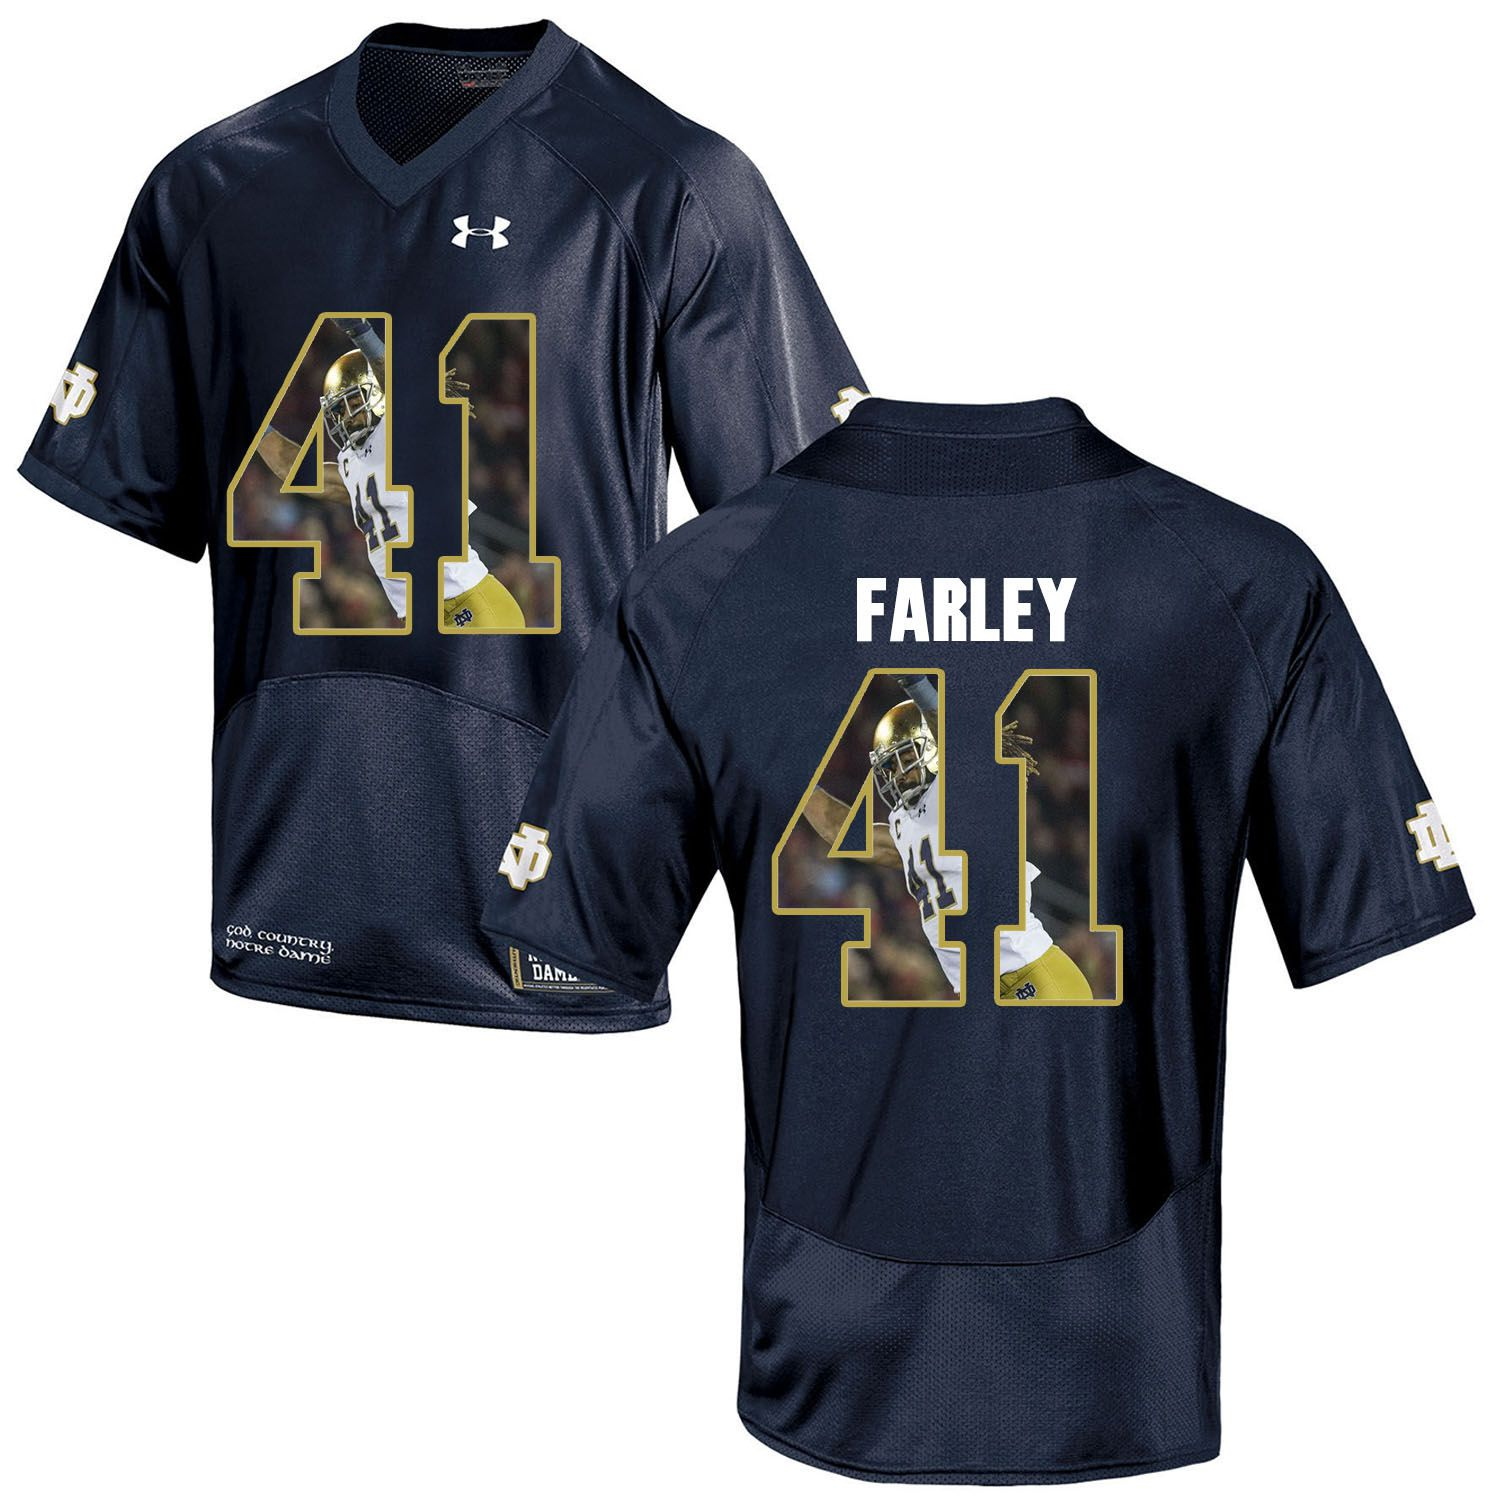 Men Norte Dame Fighting Irish 41 Farley Navy Blue Fashion Edition Customized NCAA Jerseys